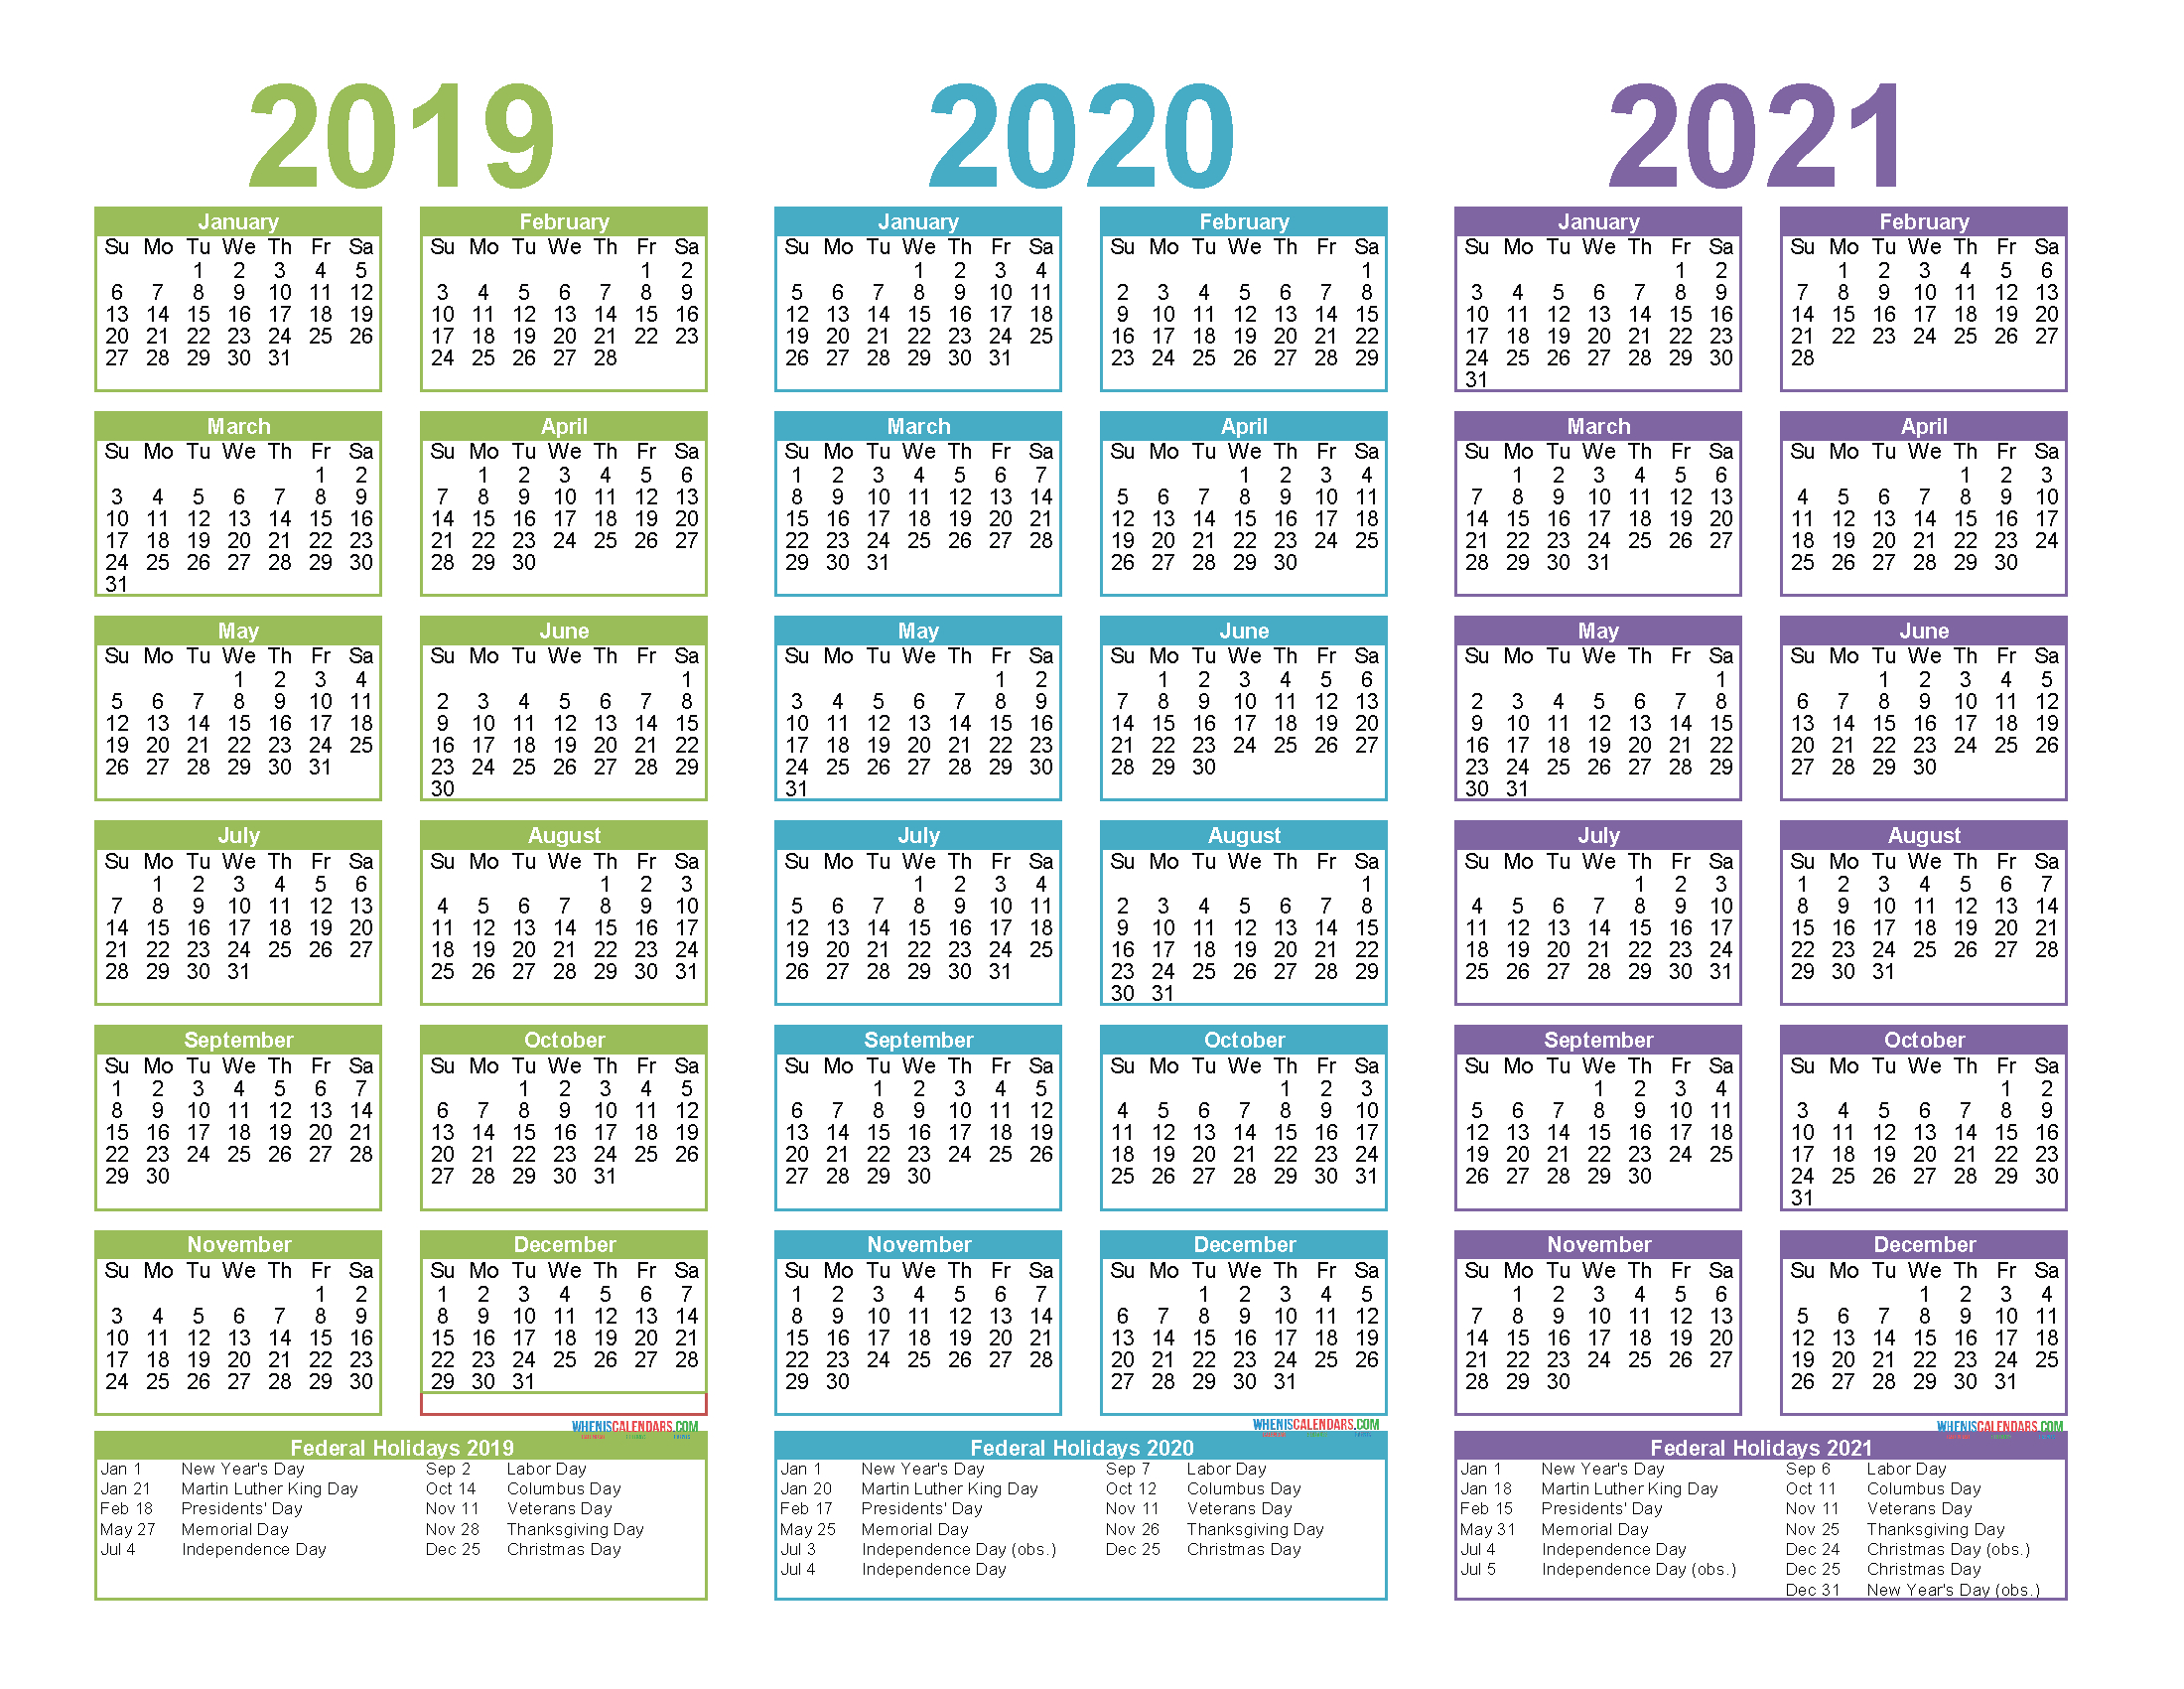 2019 To 2021 3 Year Calendar Printable Free Pdf, Word, Image within 3 Year Calendar 2020 To 2021 Printable